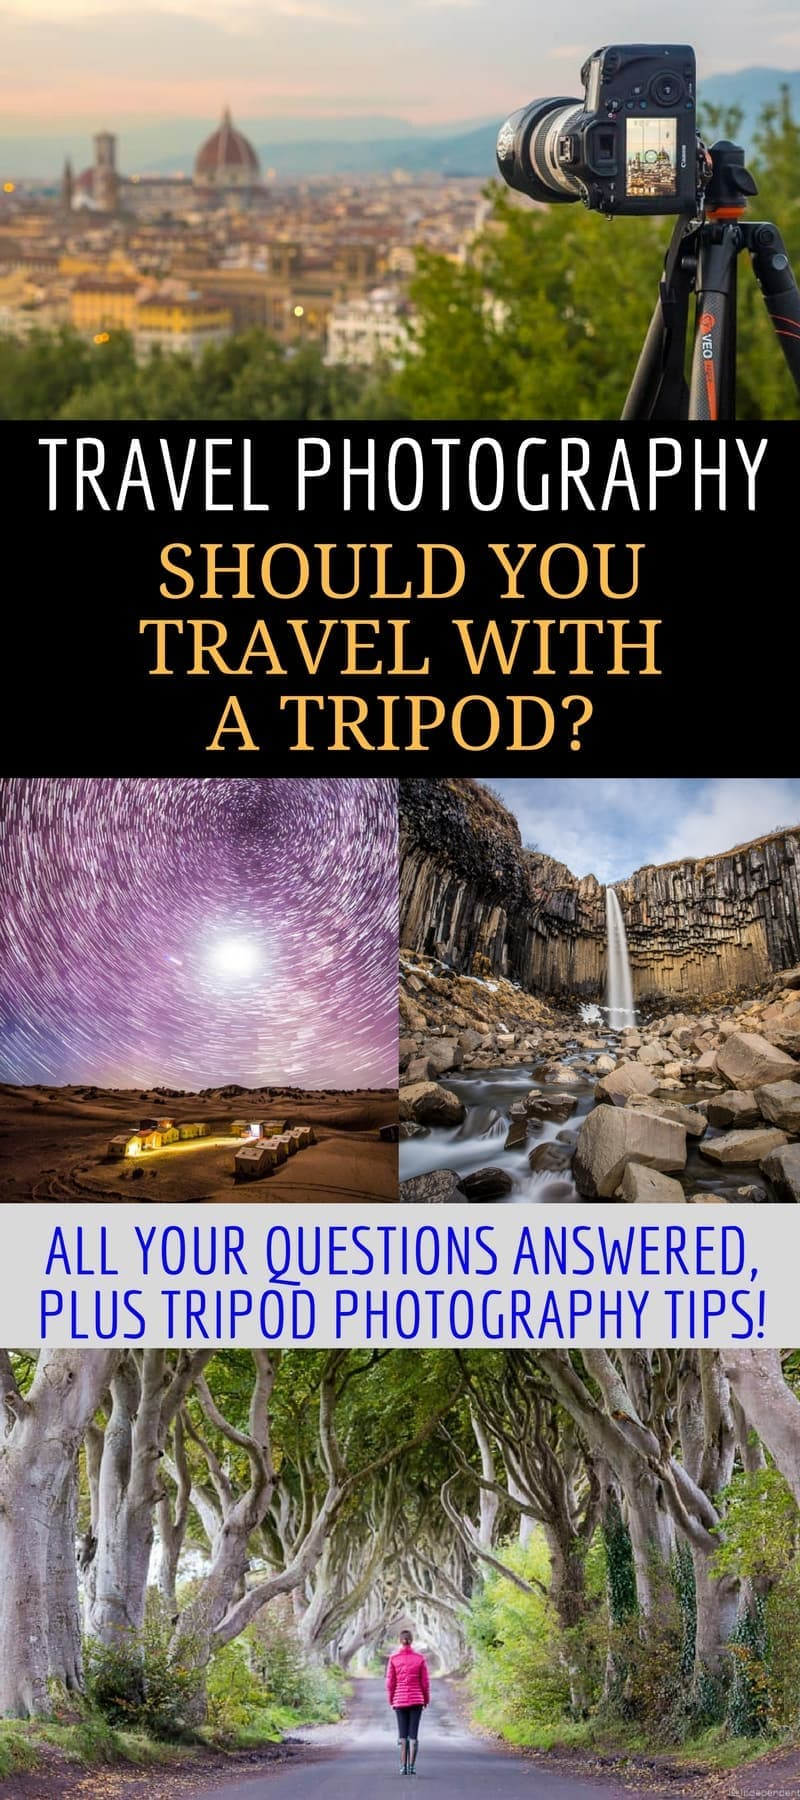 An Essential Guide to Travel Tripods. A travel tripod can help you take better vacation photos without a lot of effort. This travel photography article covers what a tripod does, how it can improve your photography, & what situations are best suited for a tripod. We also provide a list of recommended travel tripods to suit any budget & provide practical tips on traveling with a tripod.